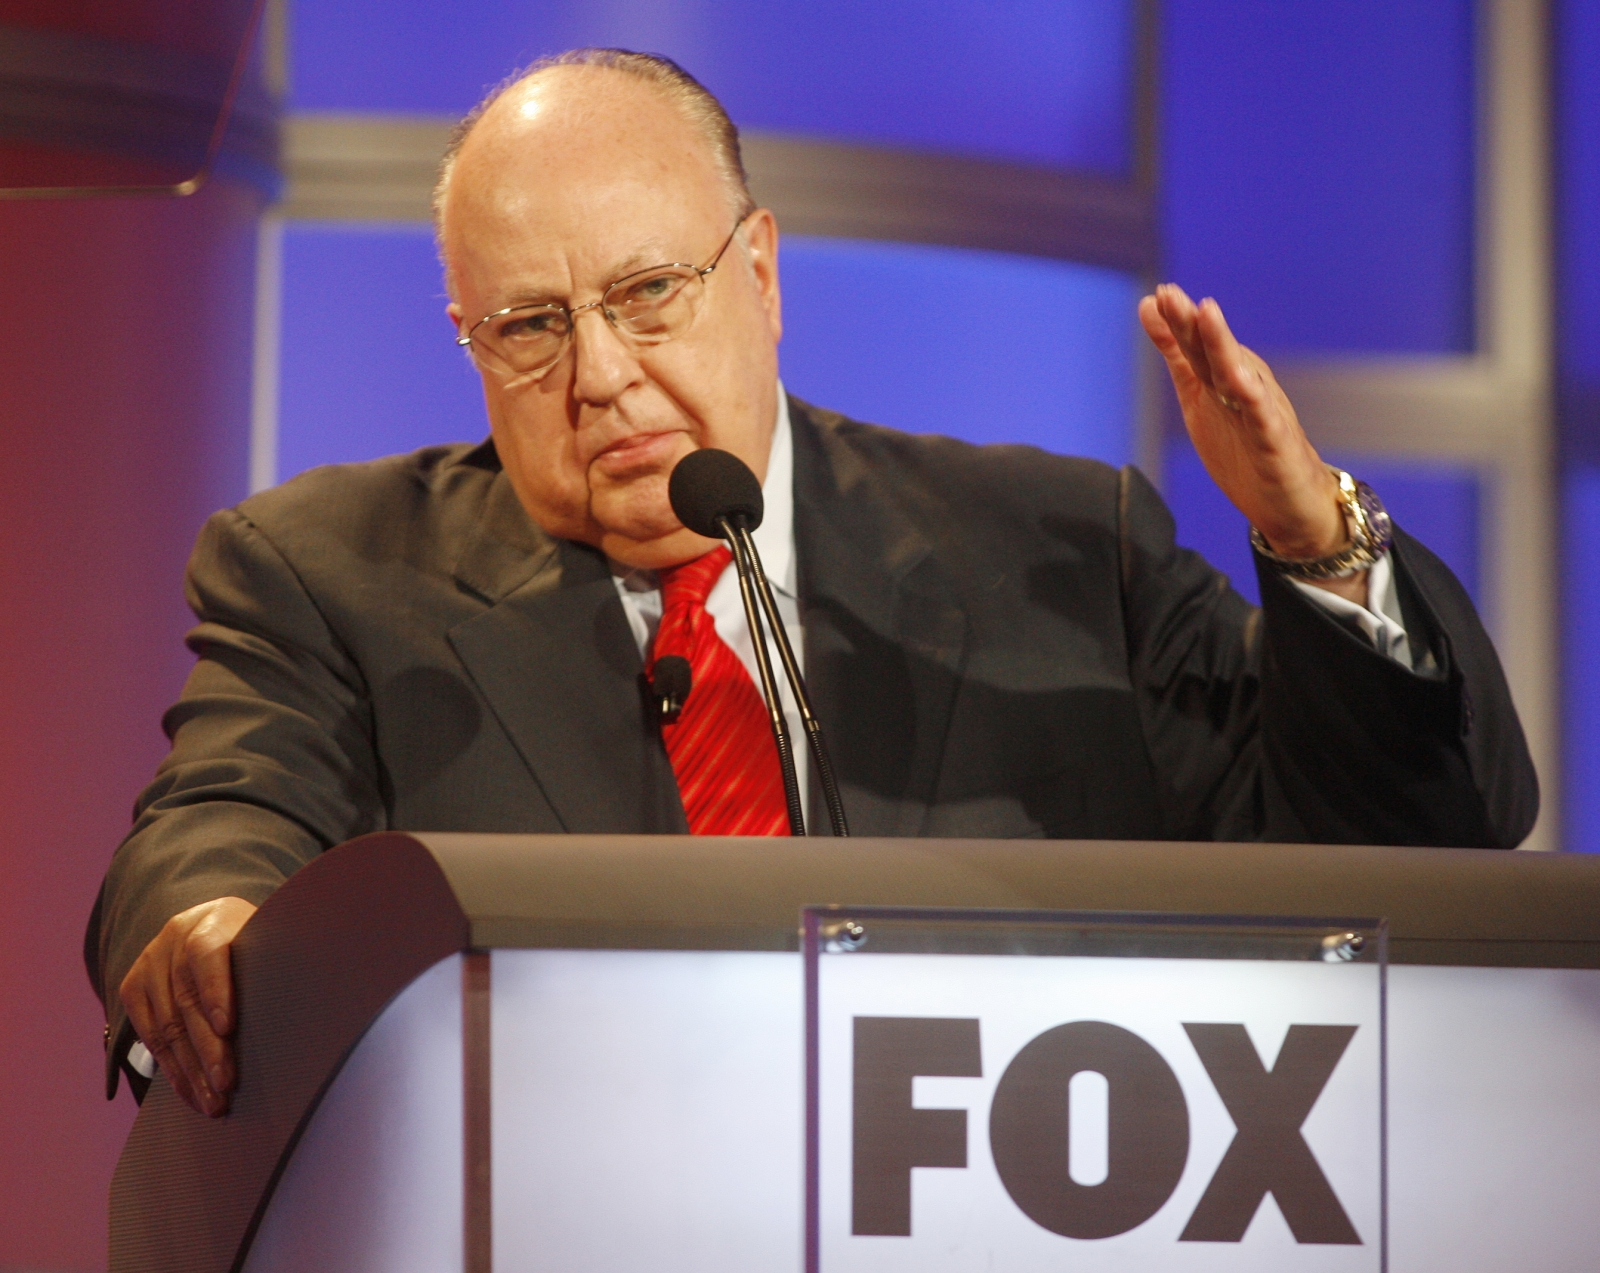 Fox News president Roger Ailes resigns after multiple accusations of sexual harassment